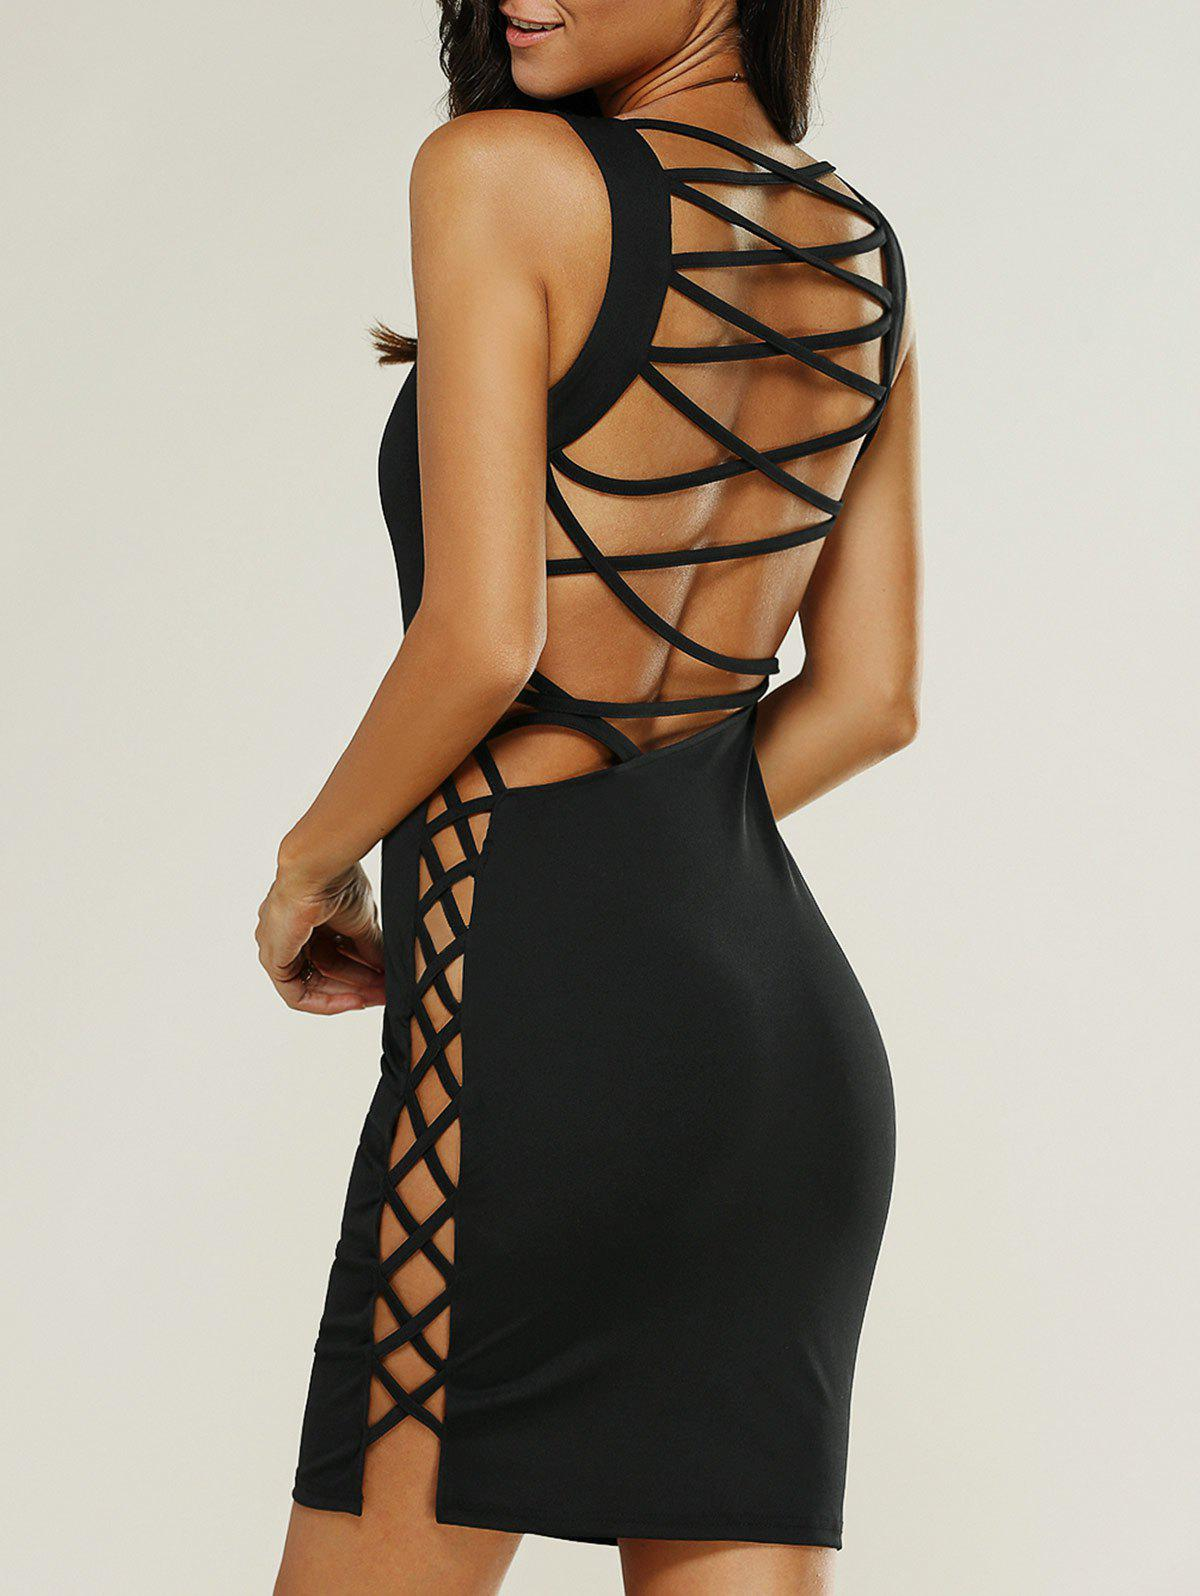 Backless Hollow Out Mini Tank DressWomen<br><br><br>Size: XL<br>Color: BLACK